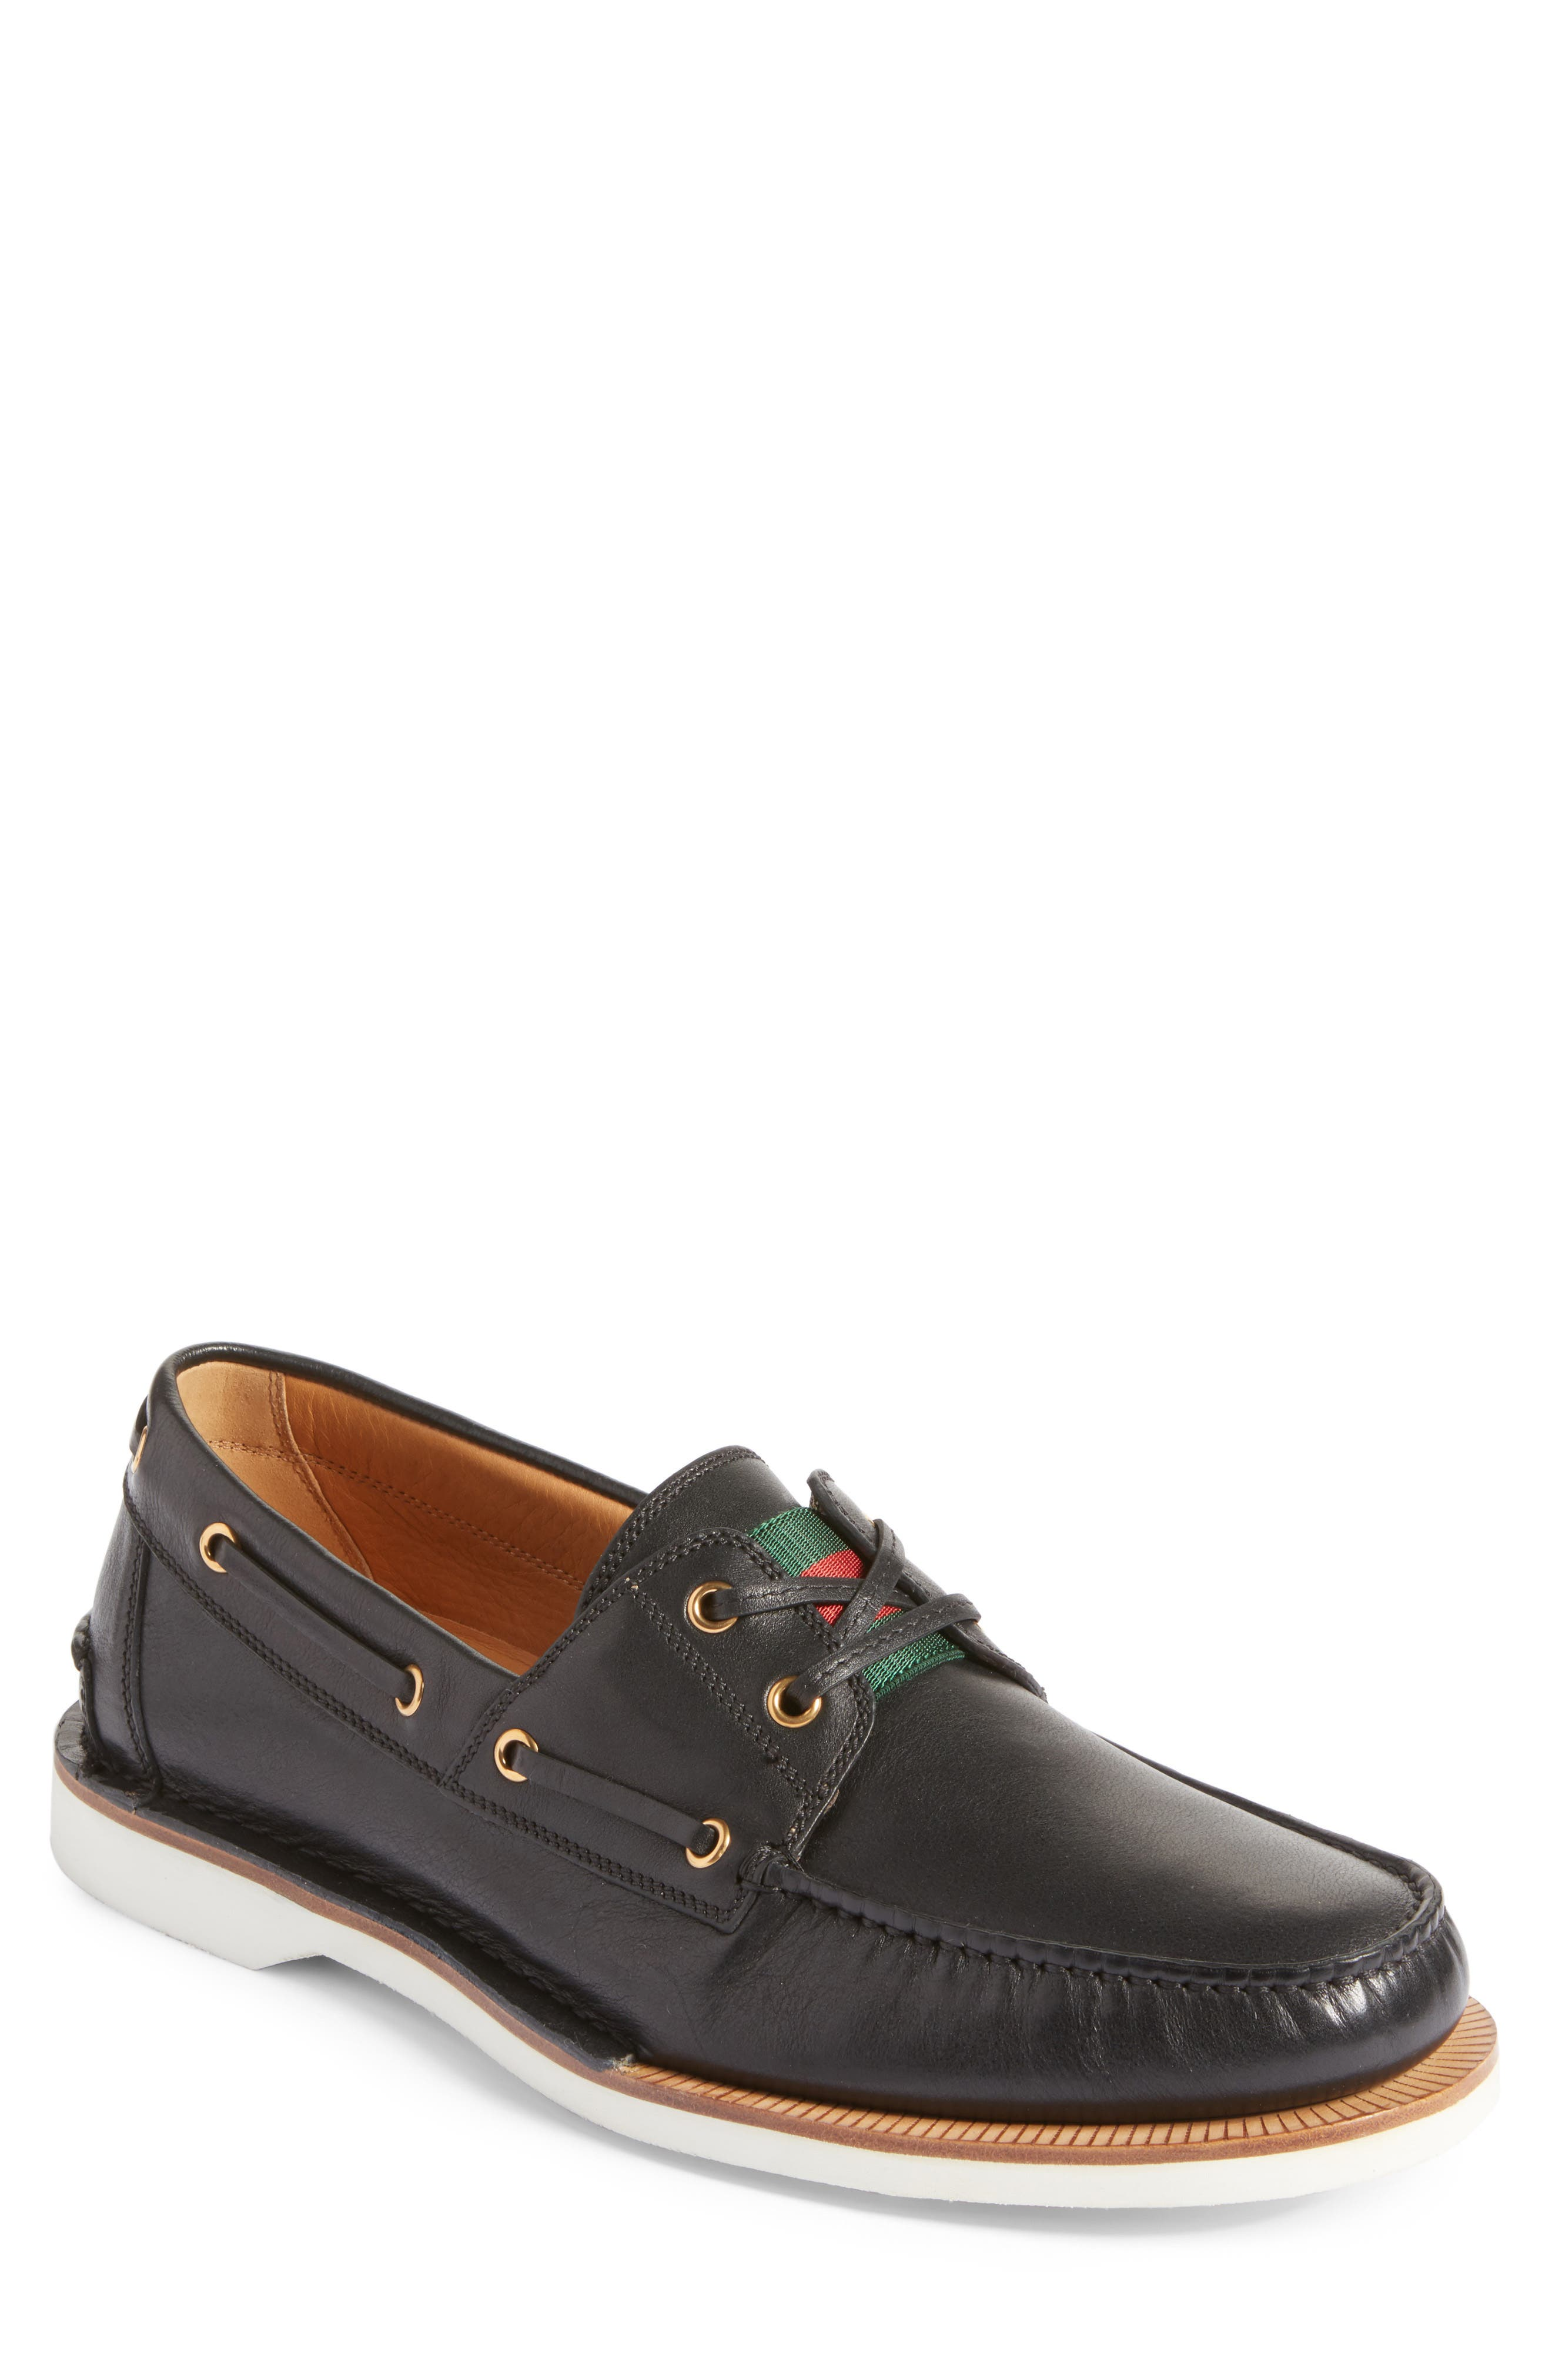 Delta Boat Loafer,                         Main,                         color, 009